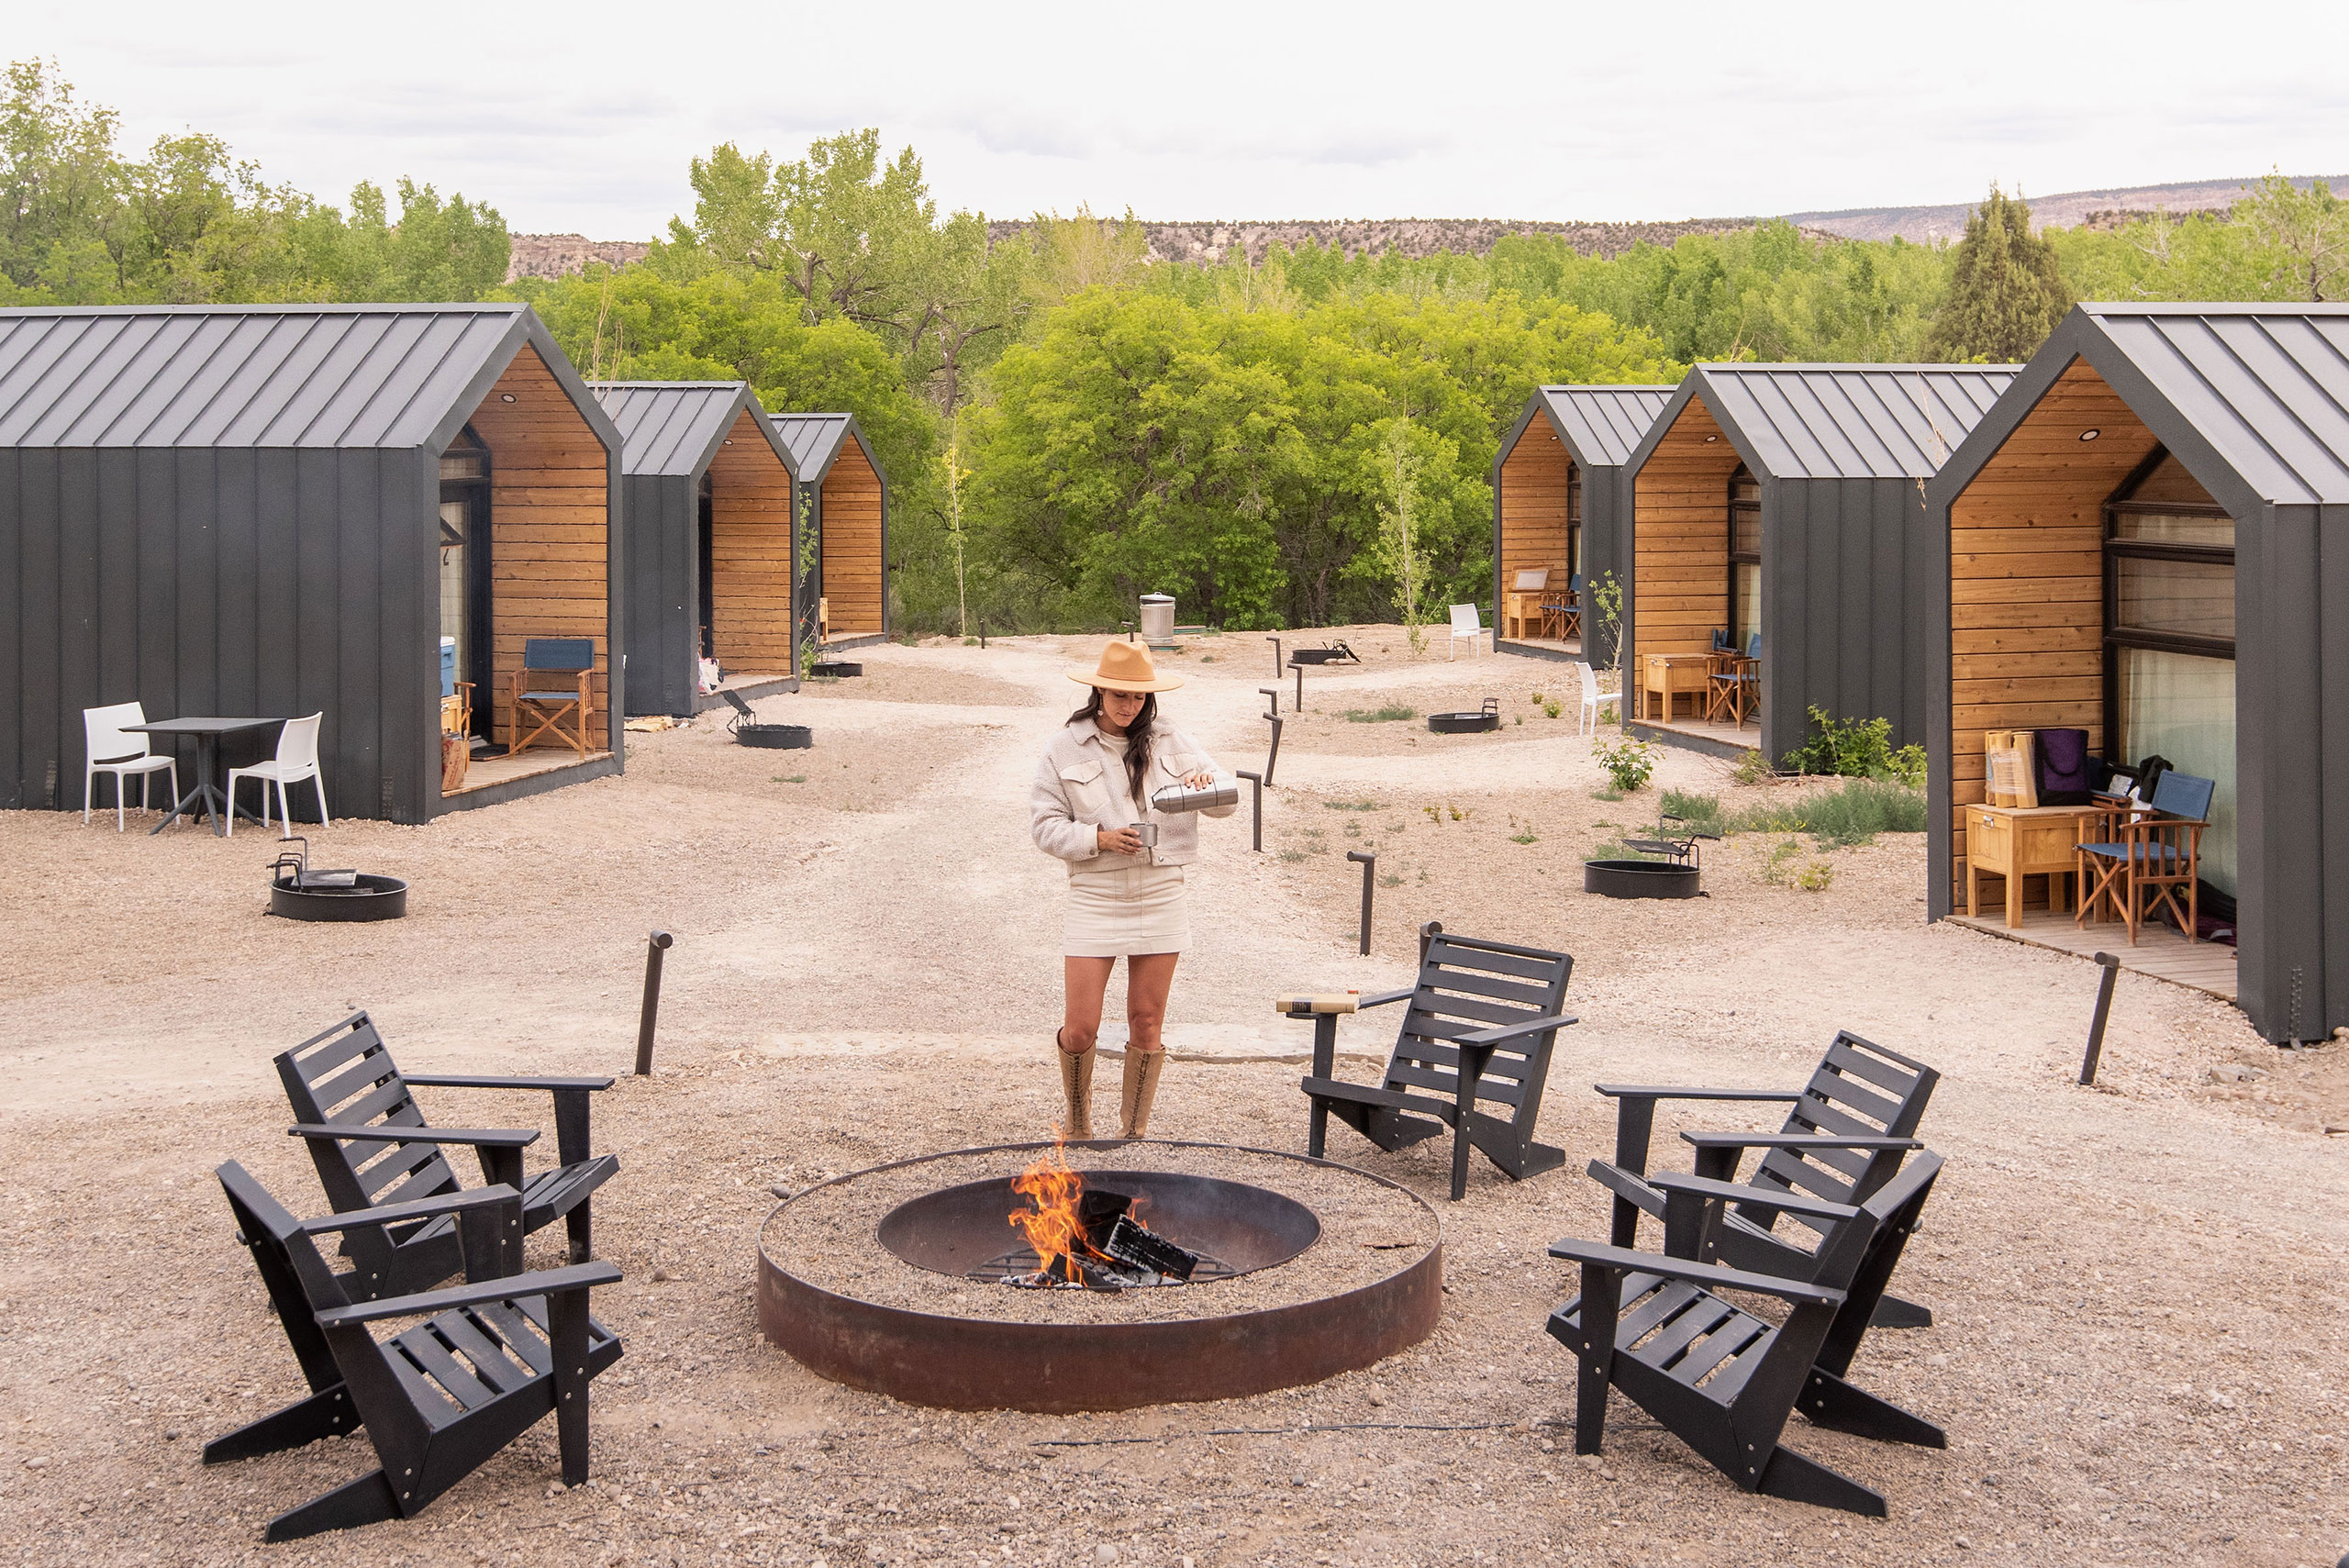 Cabins and Fire Pit.Photography by Kim and Nash Finley.